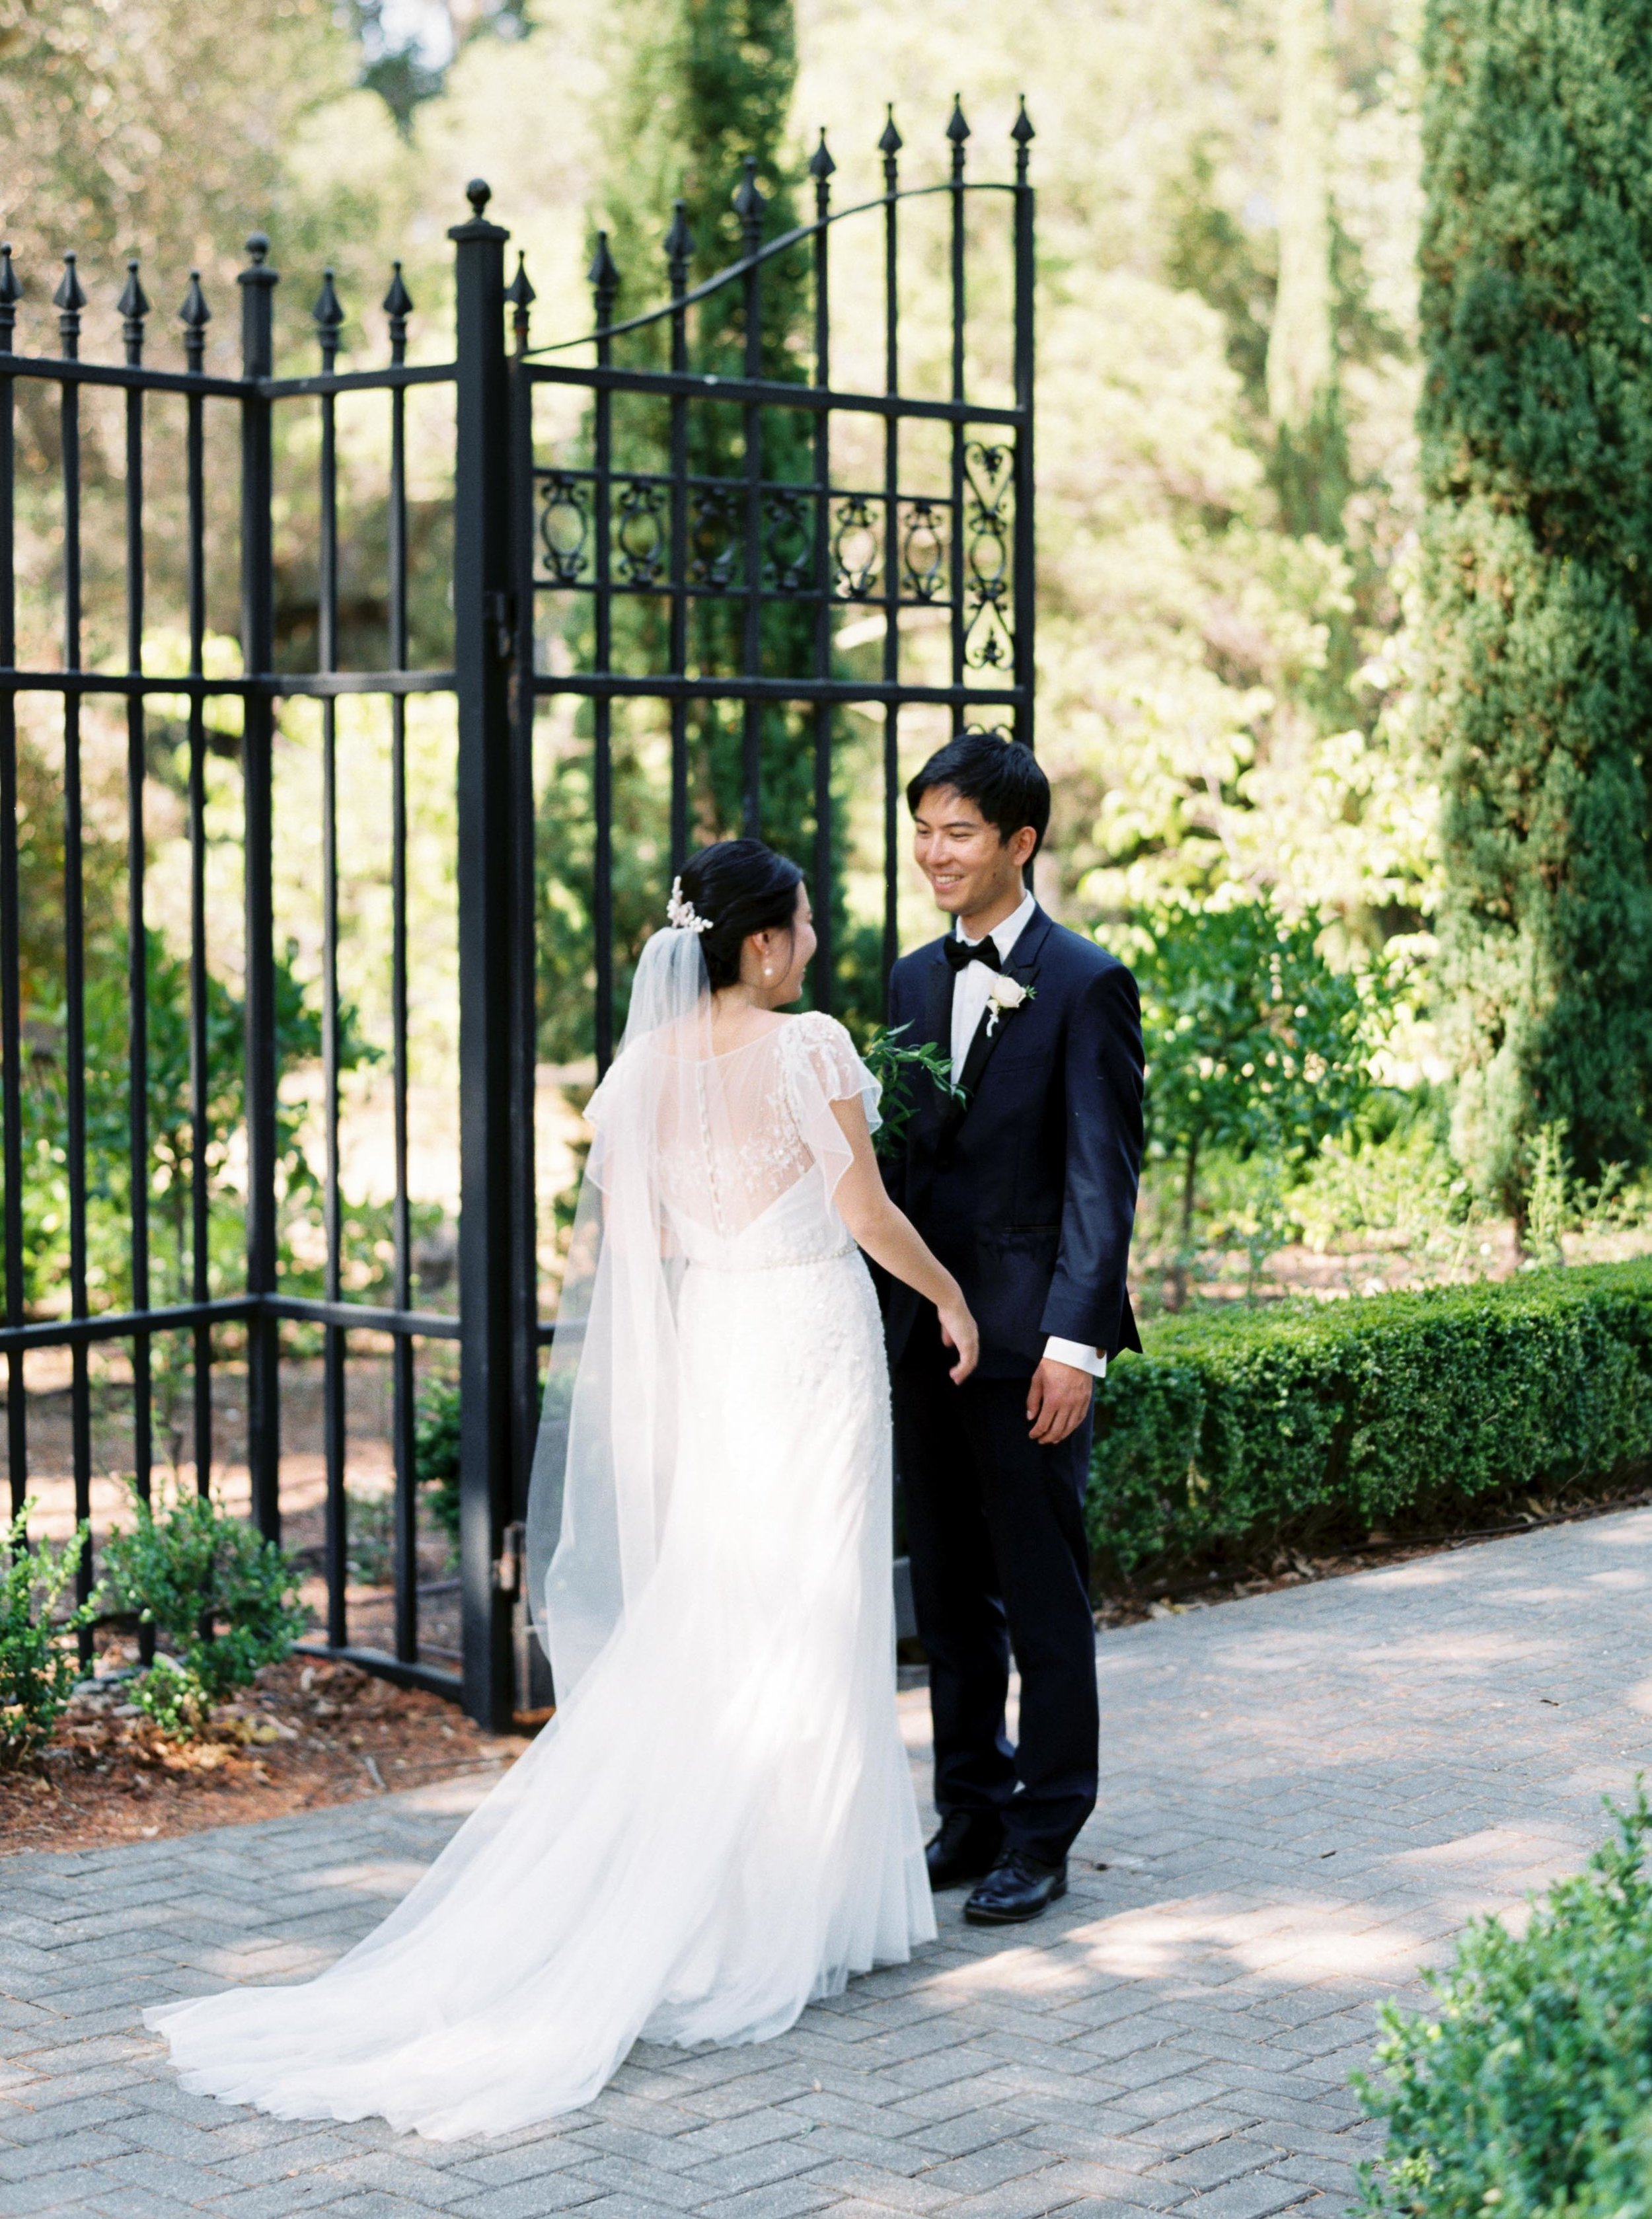 Villa_Montalvo_Wedding_Photographer_Videographer_San_Francisco066.jpg